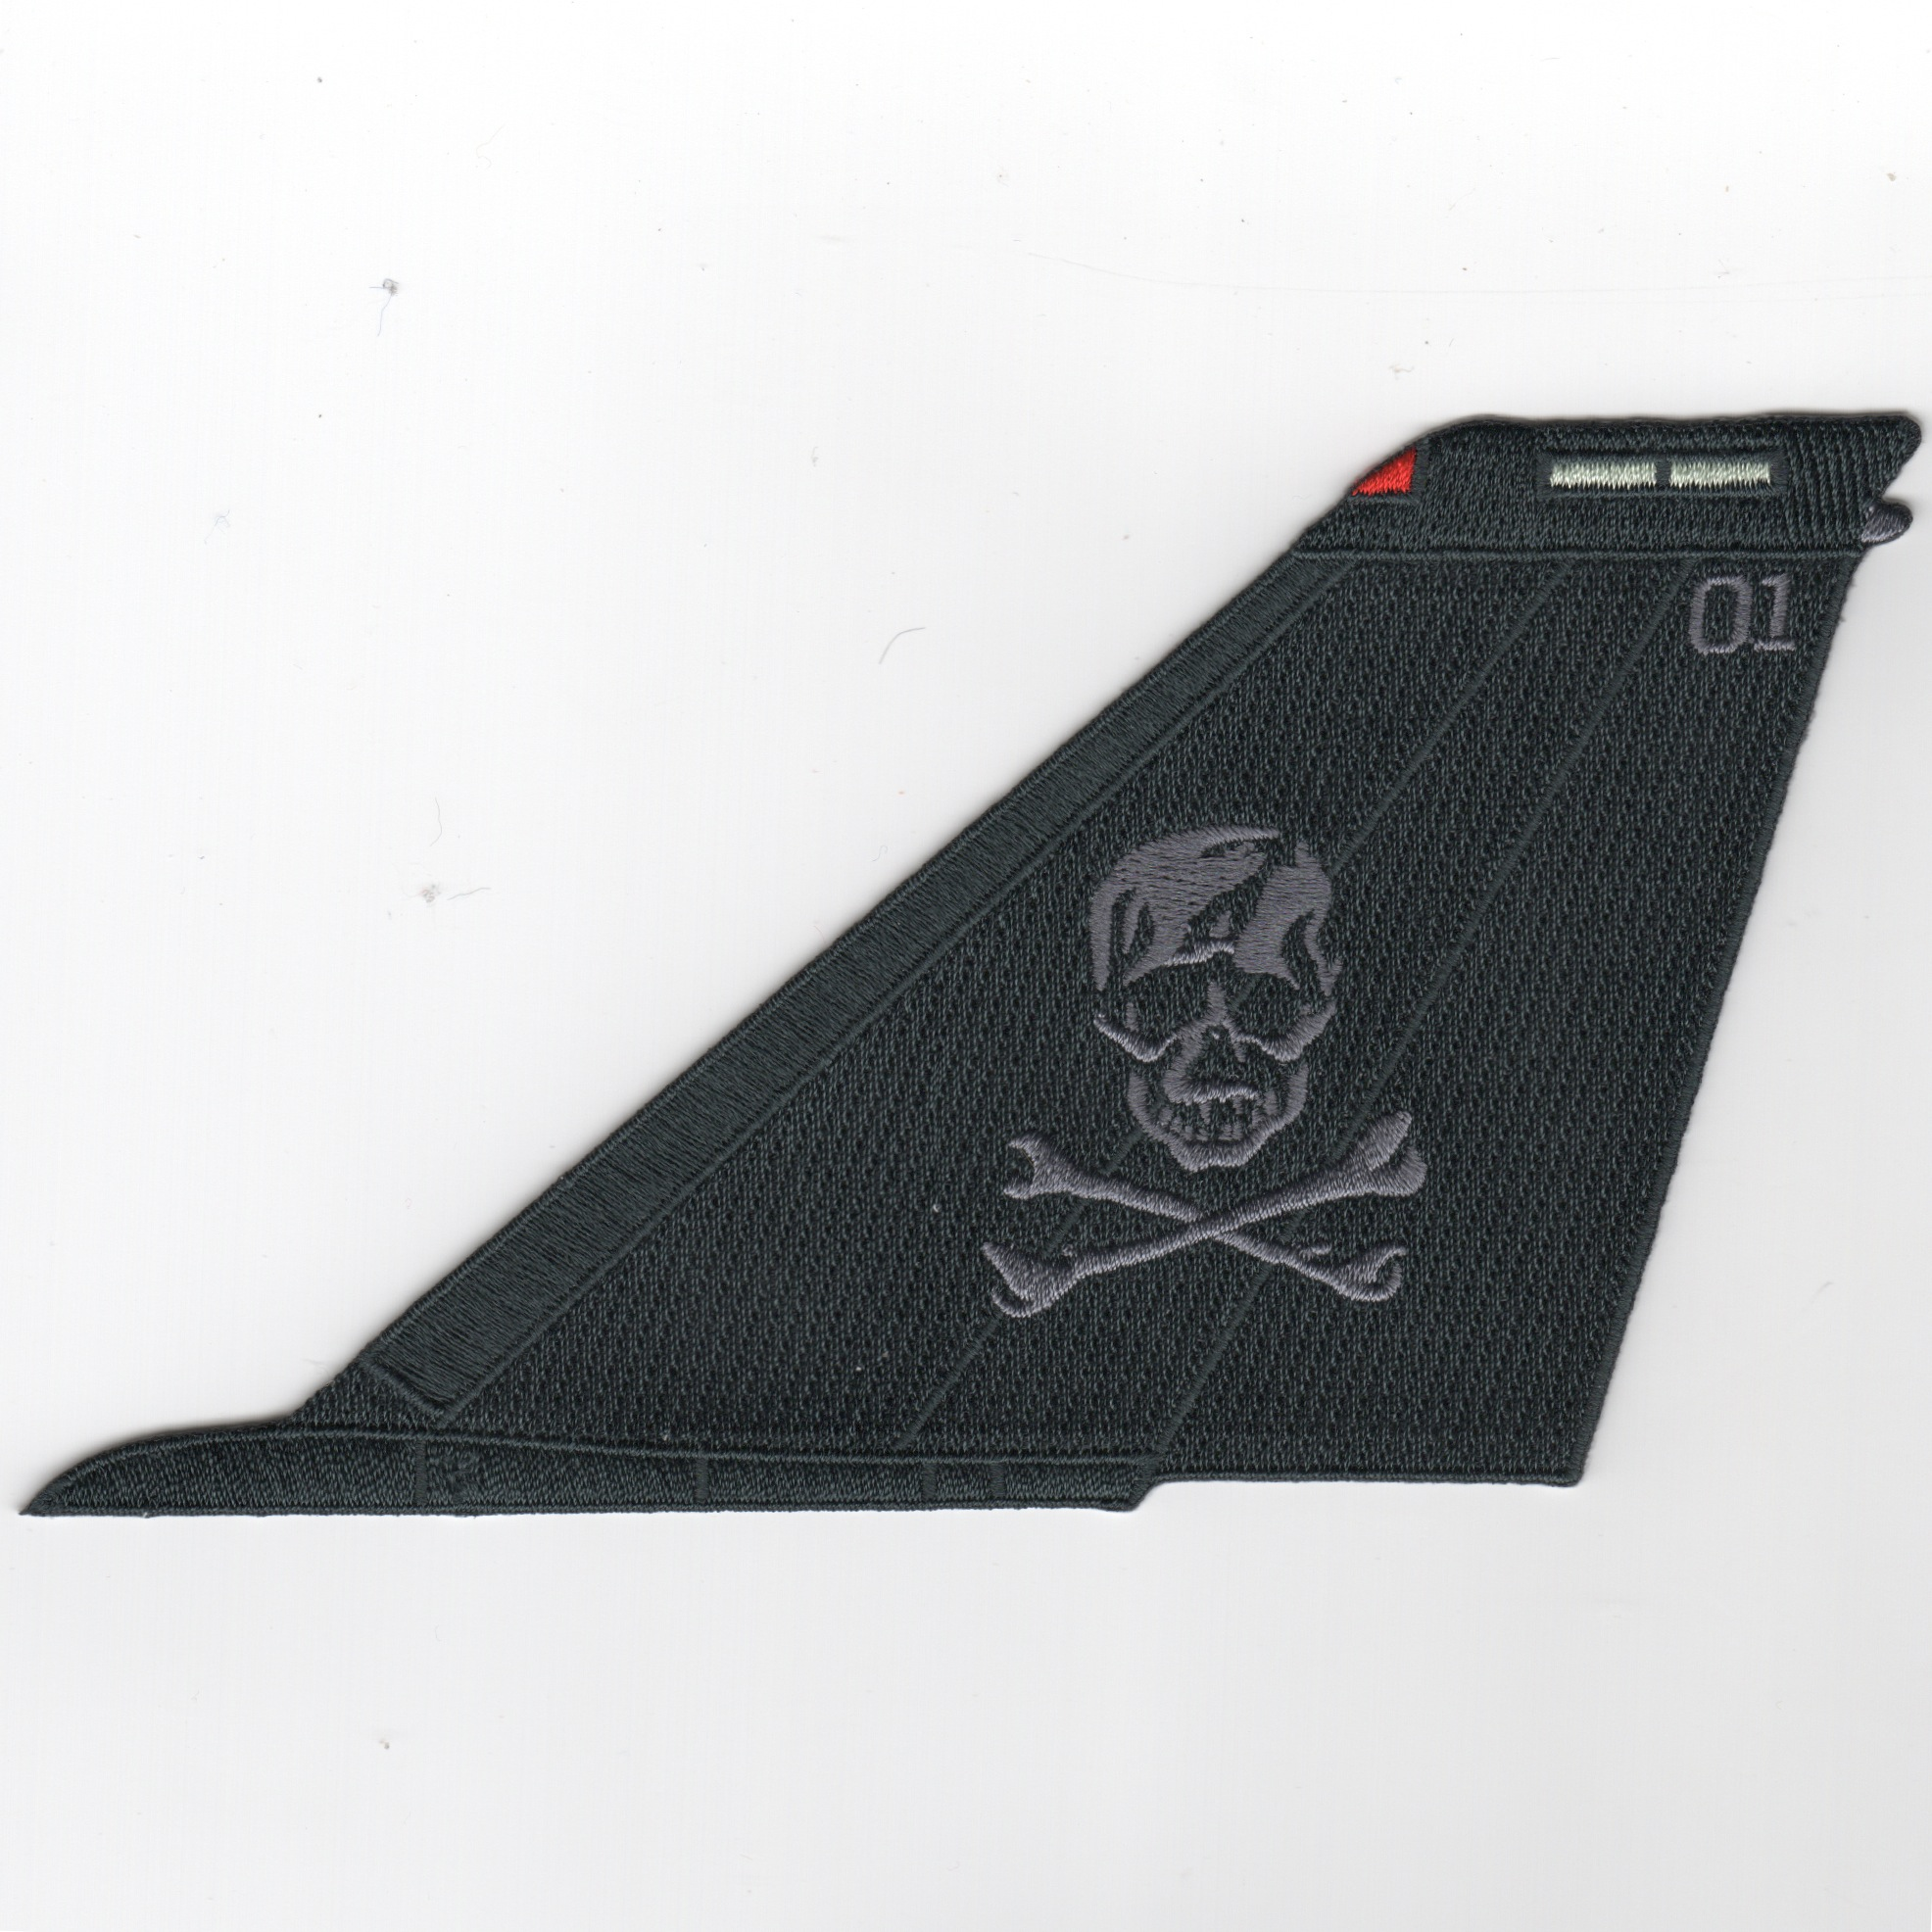 VF-103 F-14 Tailfin (Black/Gray Skull/No Text)